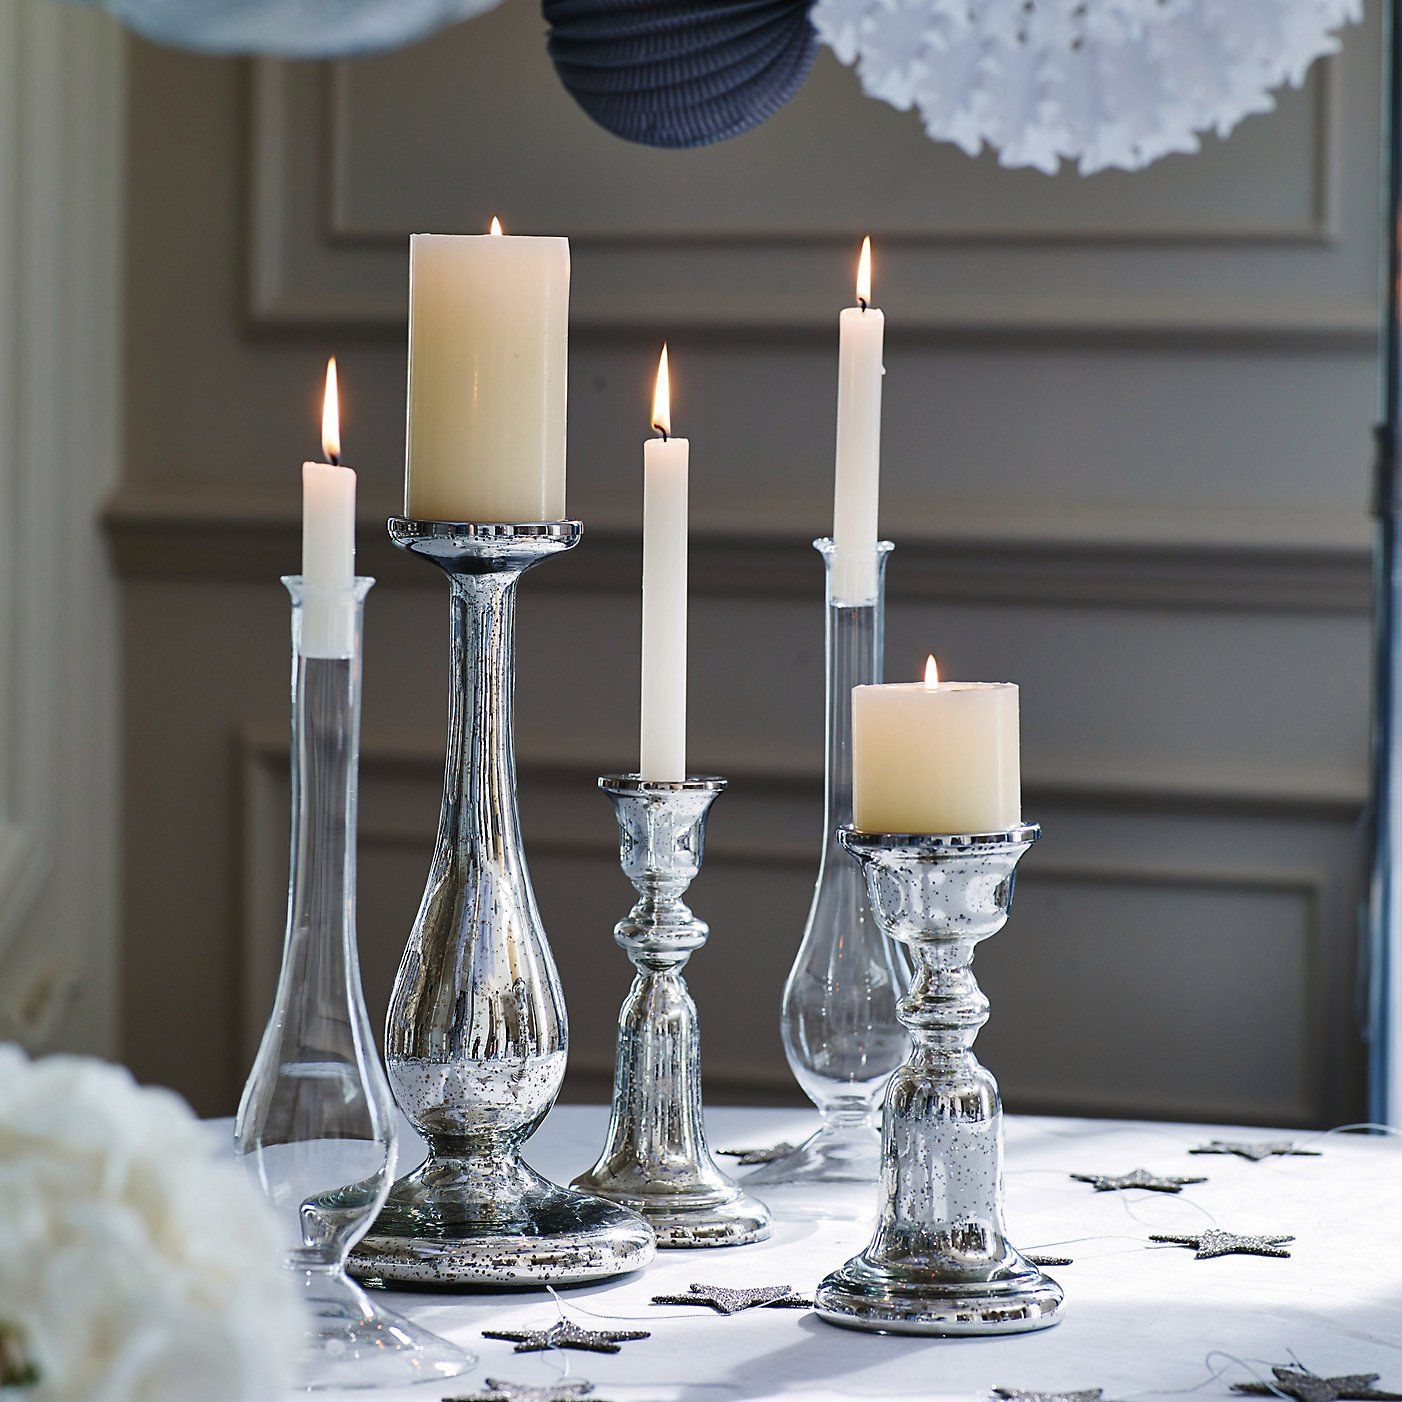 Bell Pillar Candle Holder The White Company Home and decor ideas